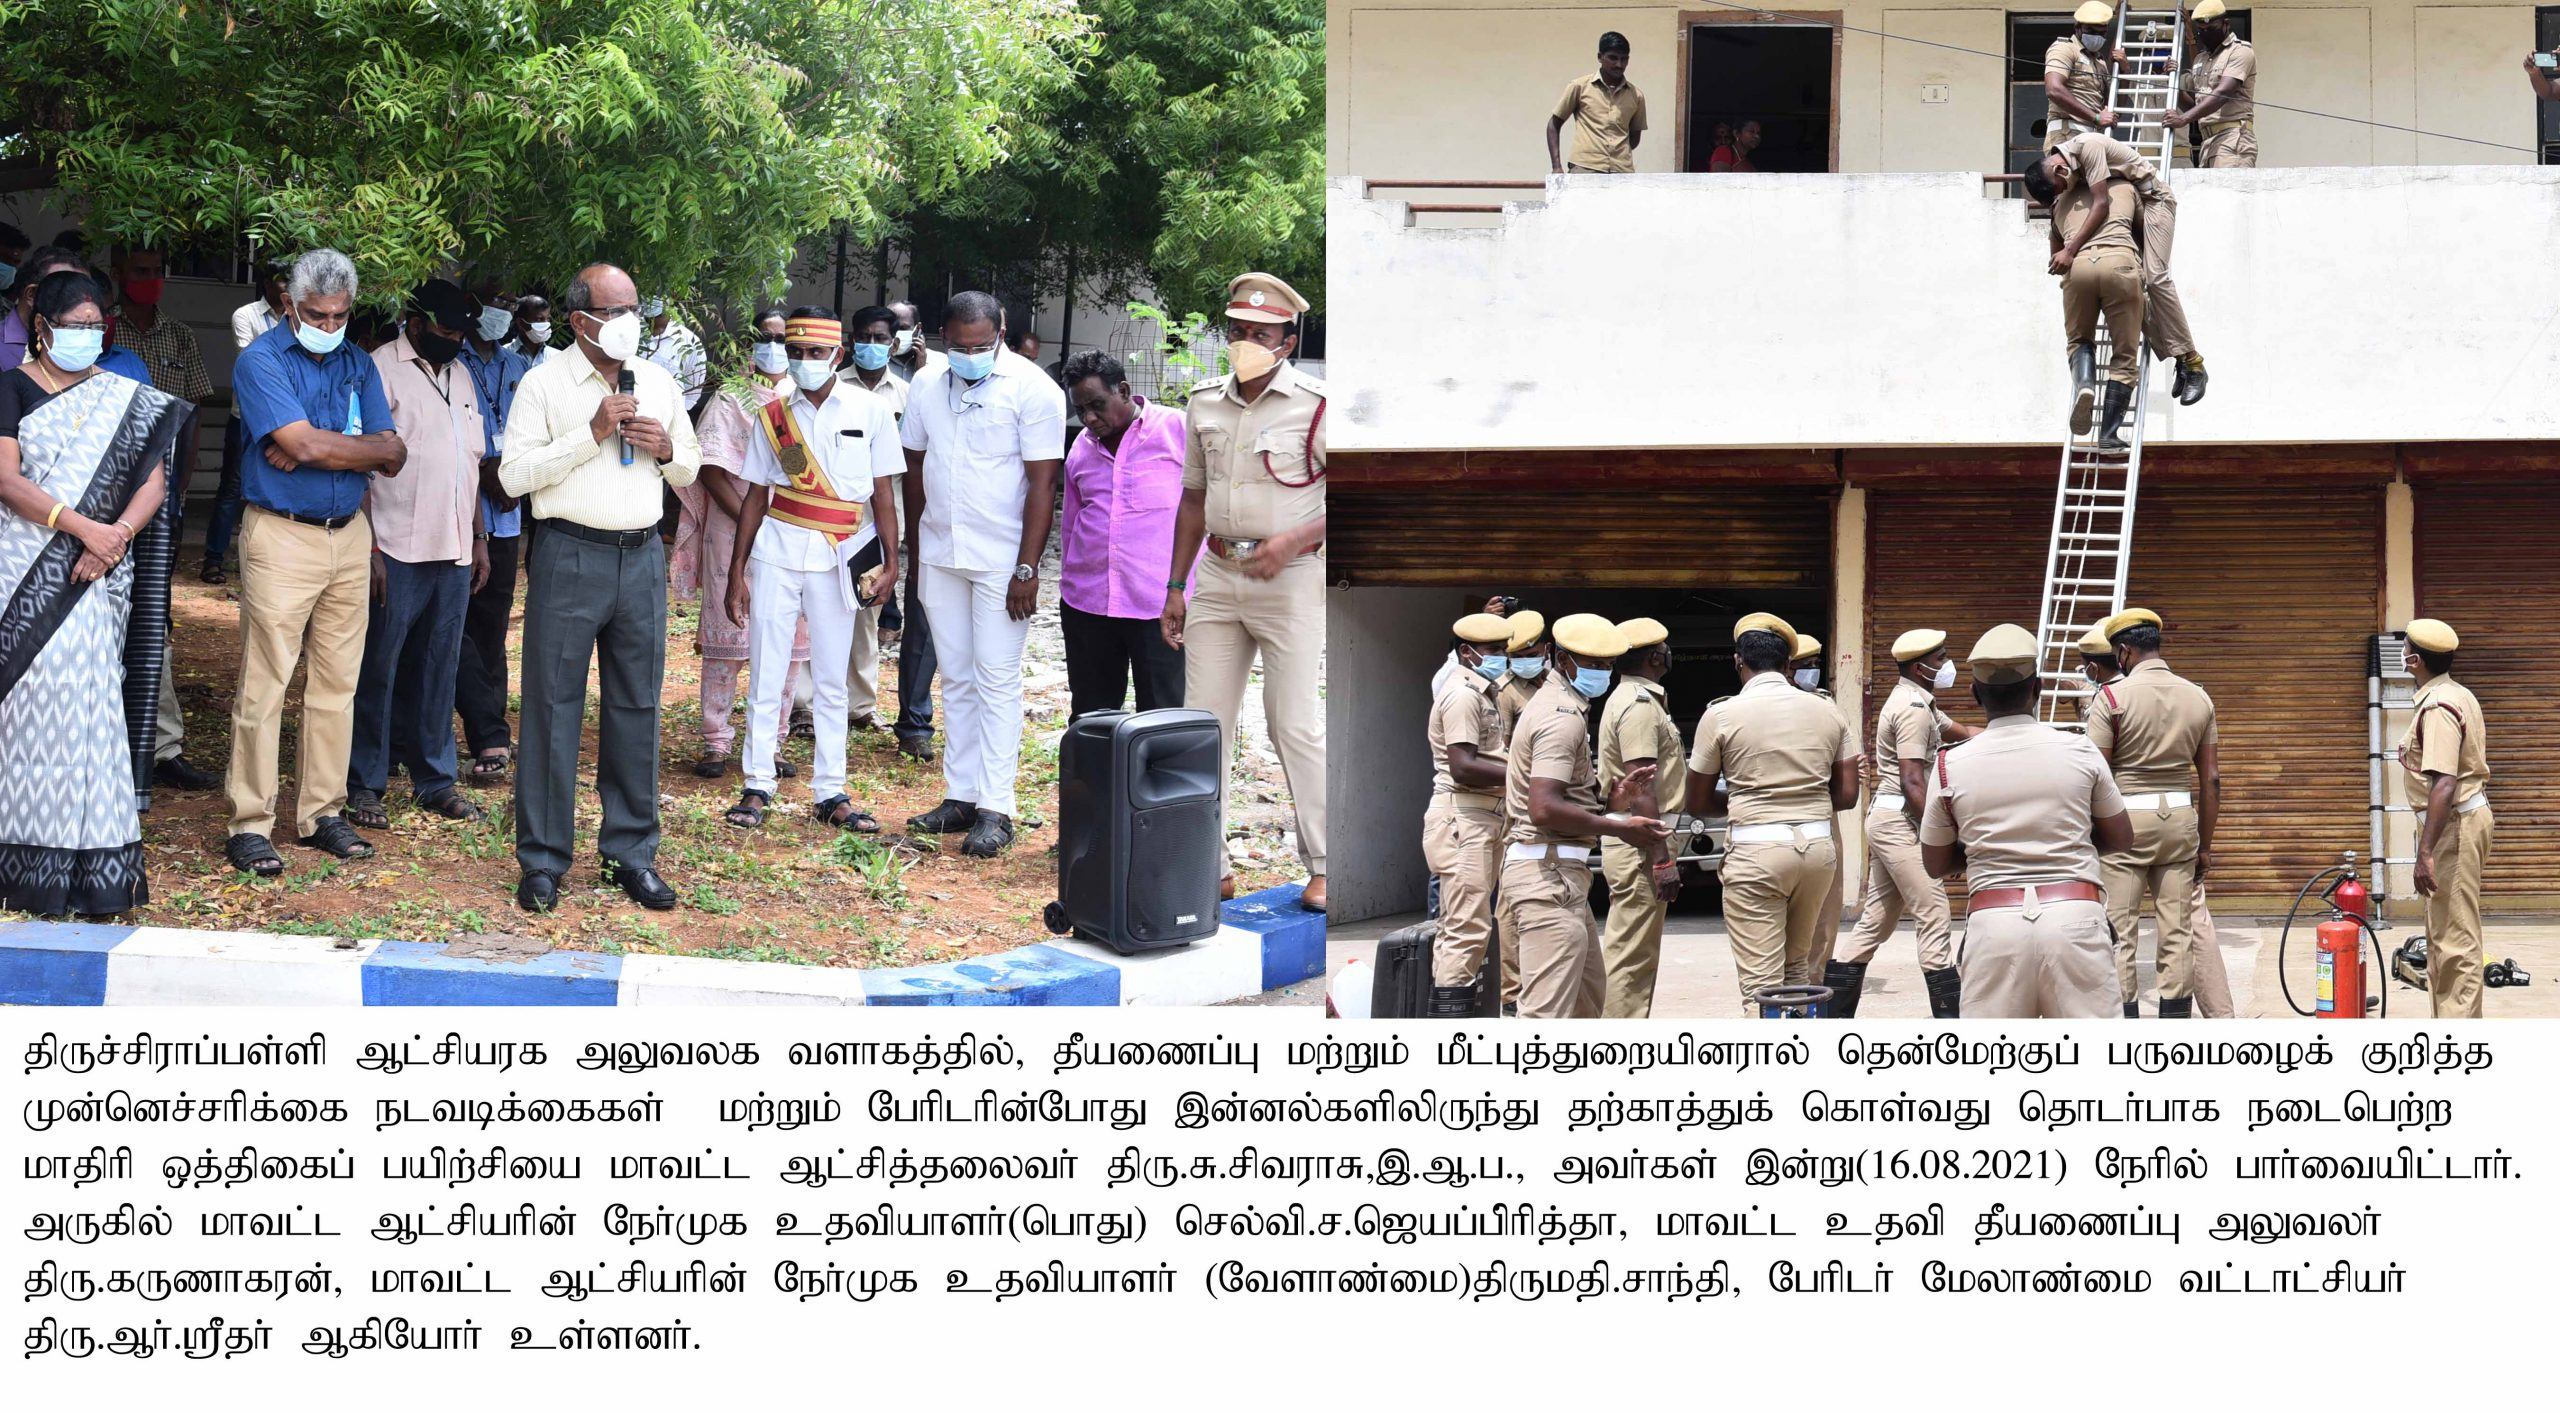 District Collector Visited the rehearsal training on precautionaryS measures for southwest monsoon and disaster relief on 16-08-2021